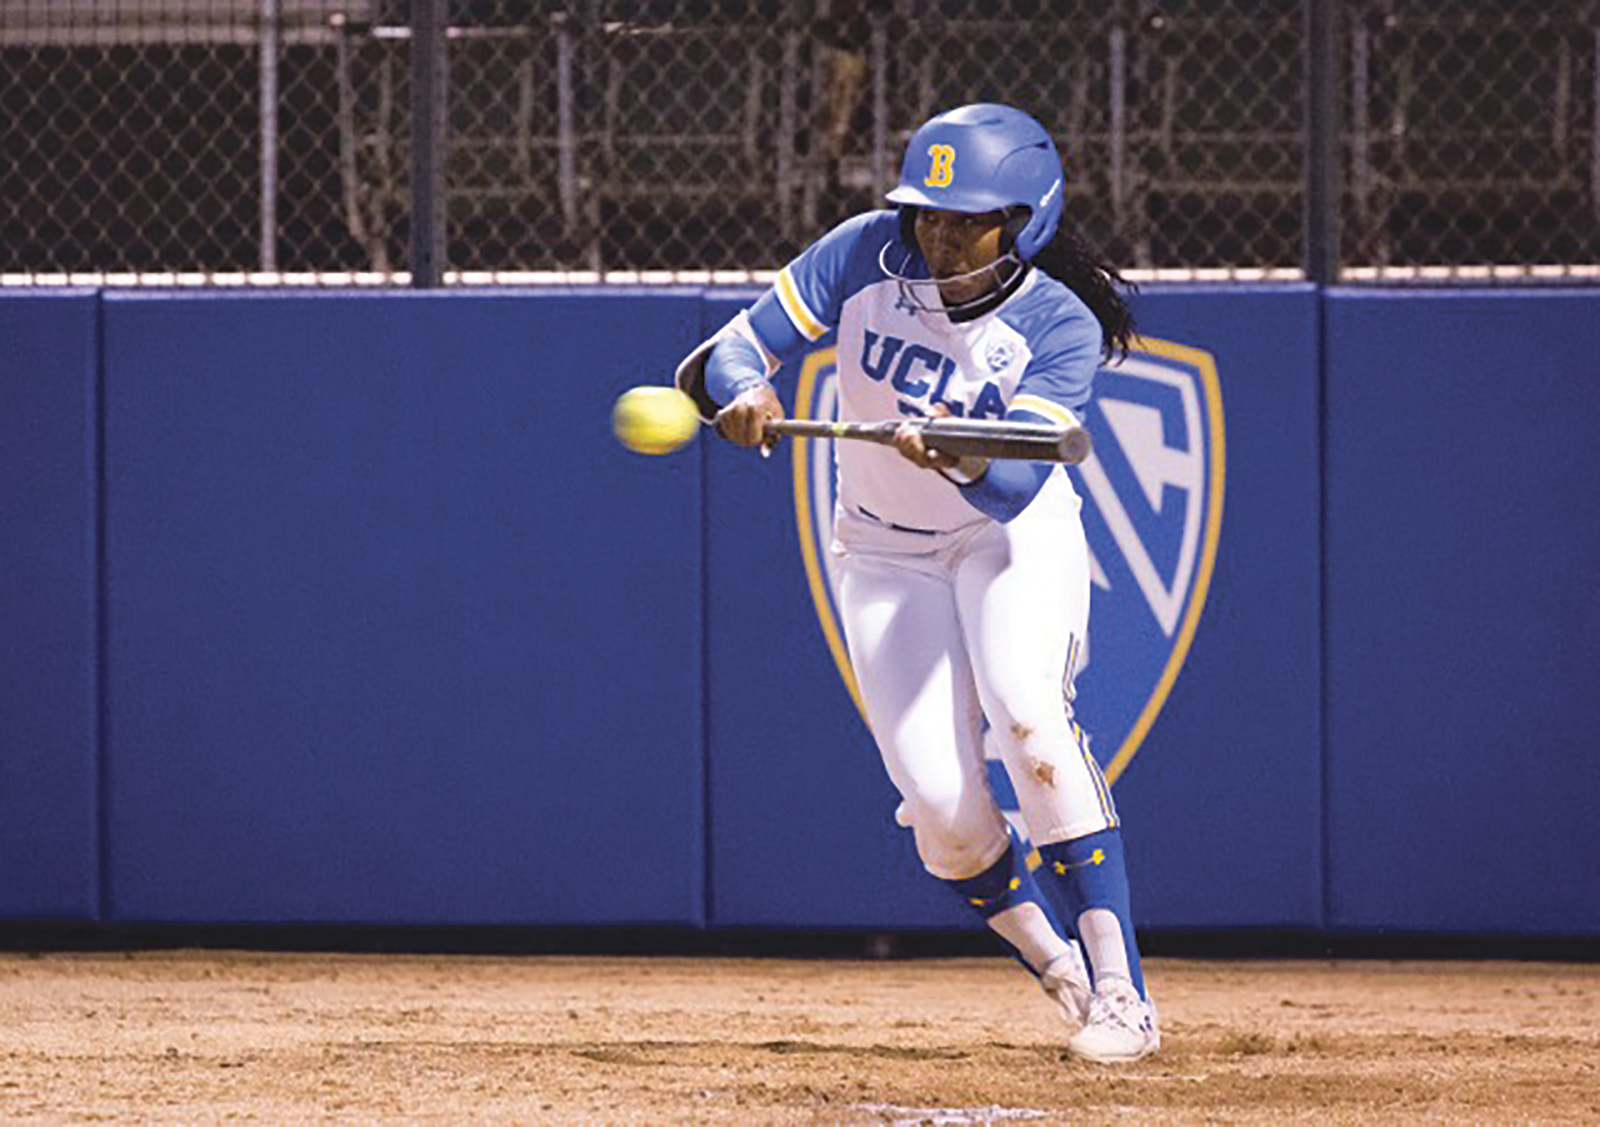 'Super Sophomore' Kinsley Washington helped the Bruins get back to its 5th straight WCWS.(Courtesy Photo)